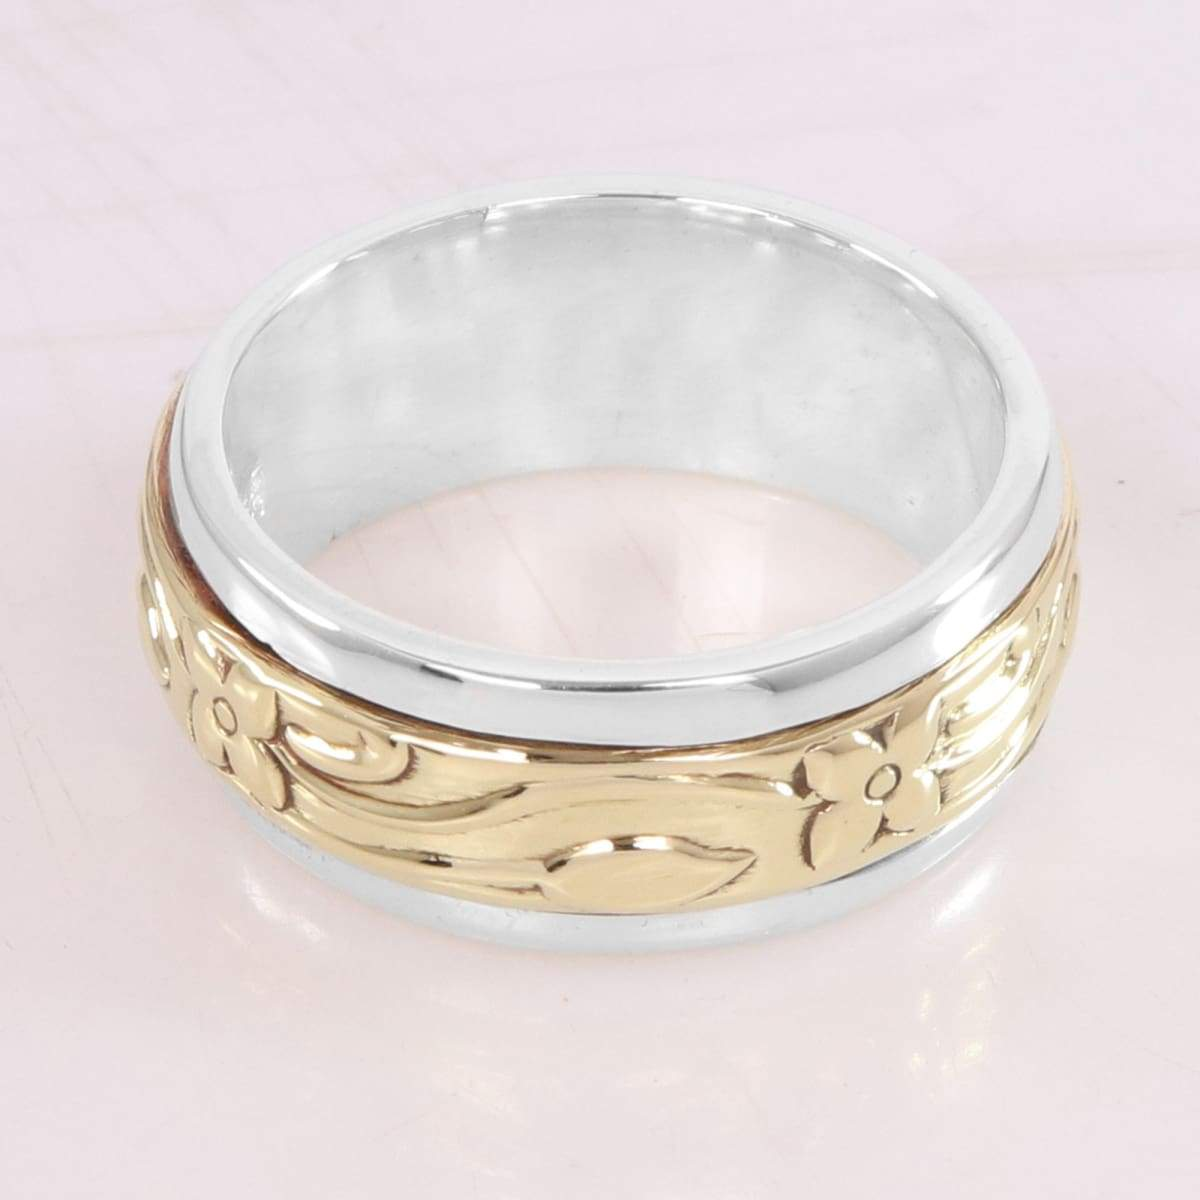 925 Silver Brass Spinner Ring Sterling Meditation Yoga Fidget Worry Anxiety Promise band